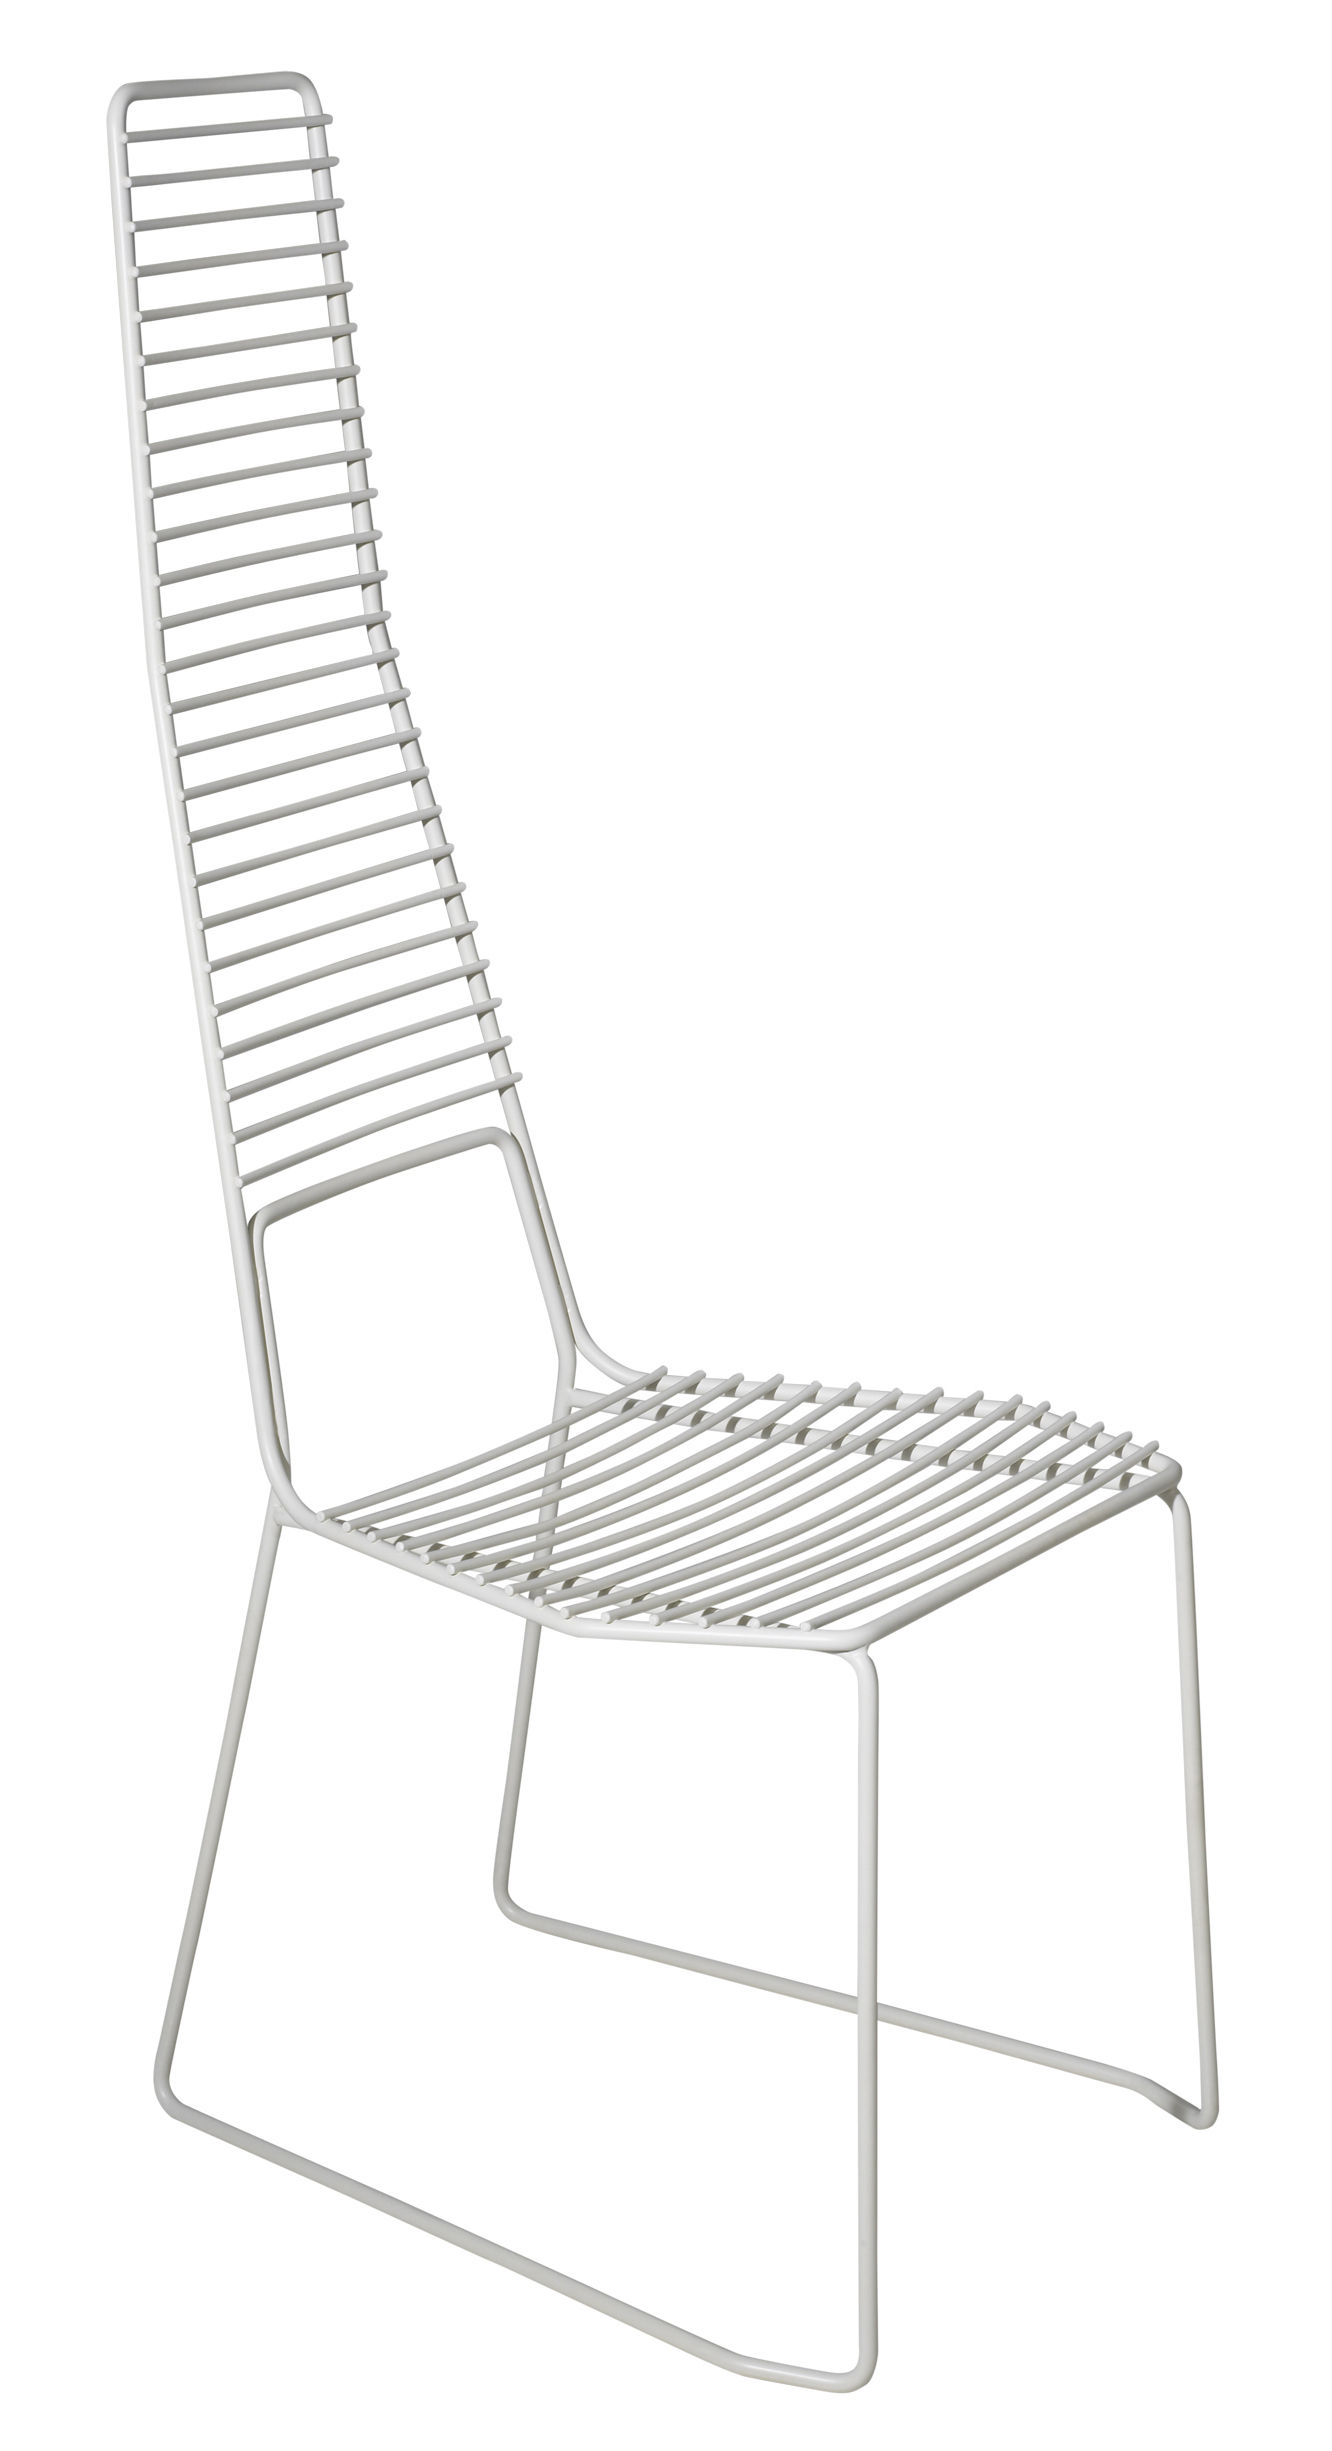 Furniture - Chairs - Alieno Chair - Metal by Casamania - White - Varnished metal